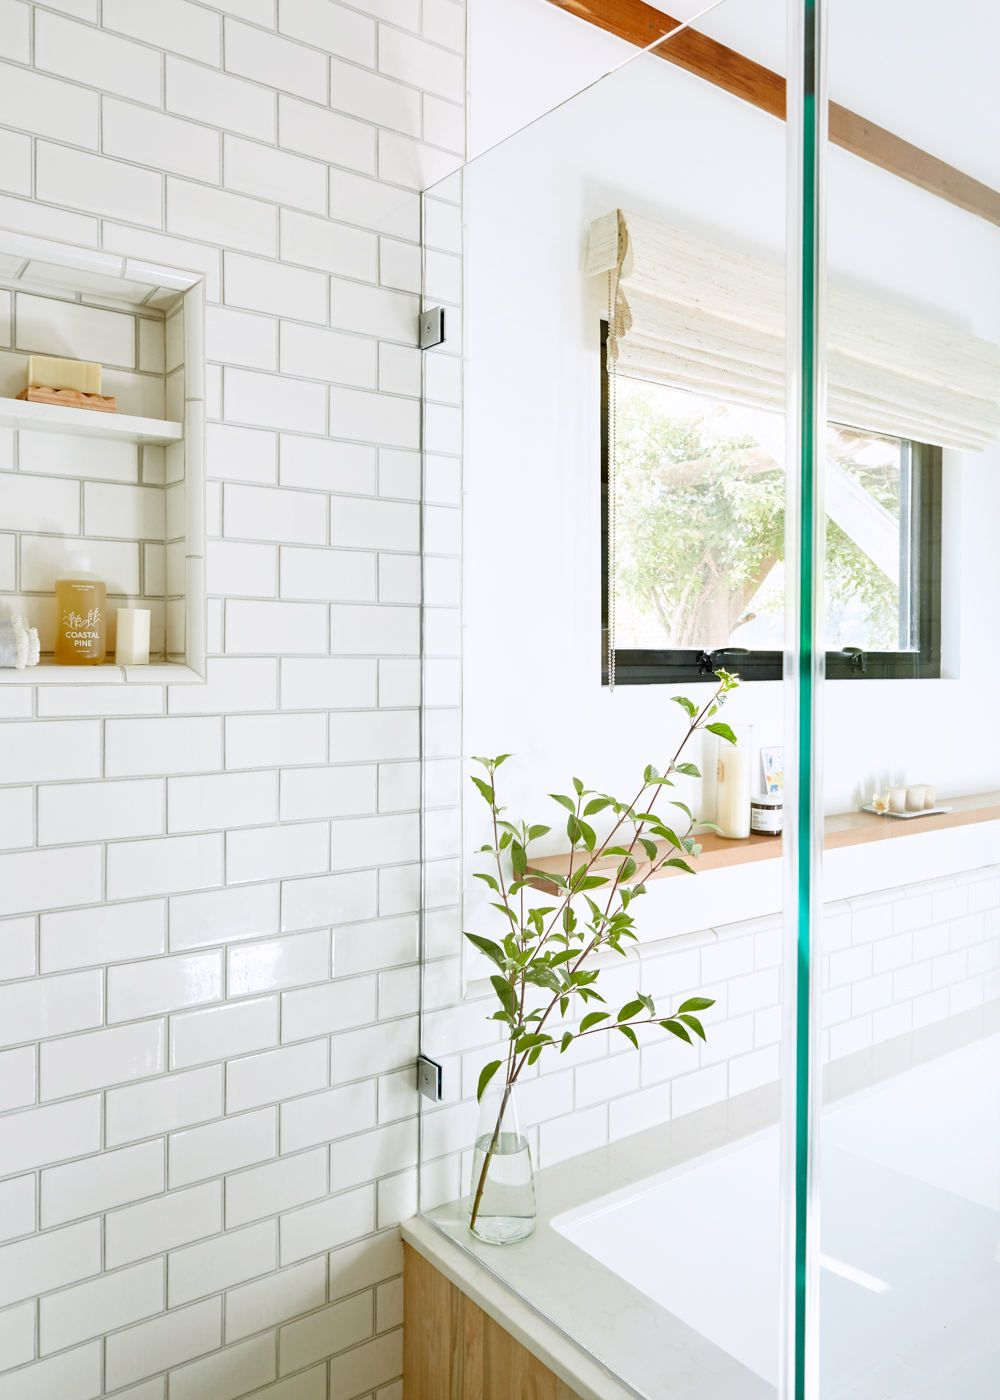 Bathroom Of The Week A Spa Like Sanctuary In A Sonoma County Cottage Remodelista Bathroom Spa Subway Tile Showers Luxury Bathroom